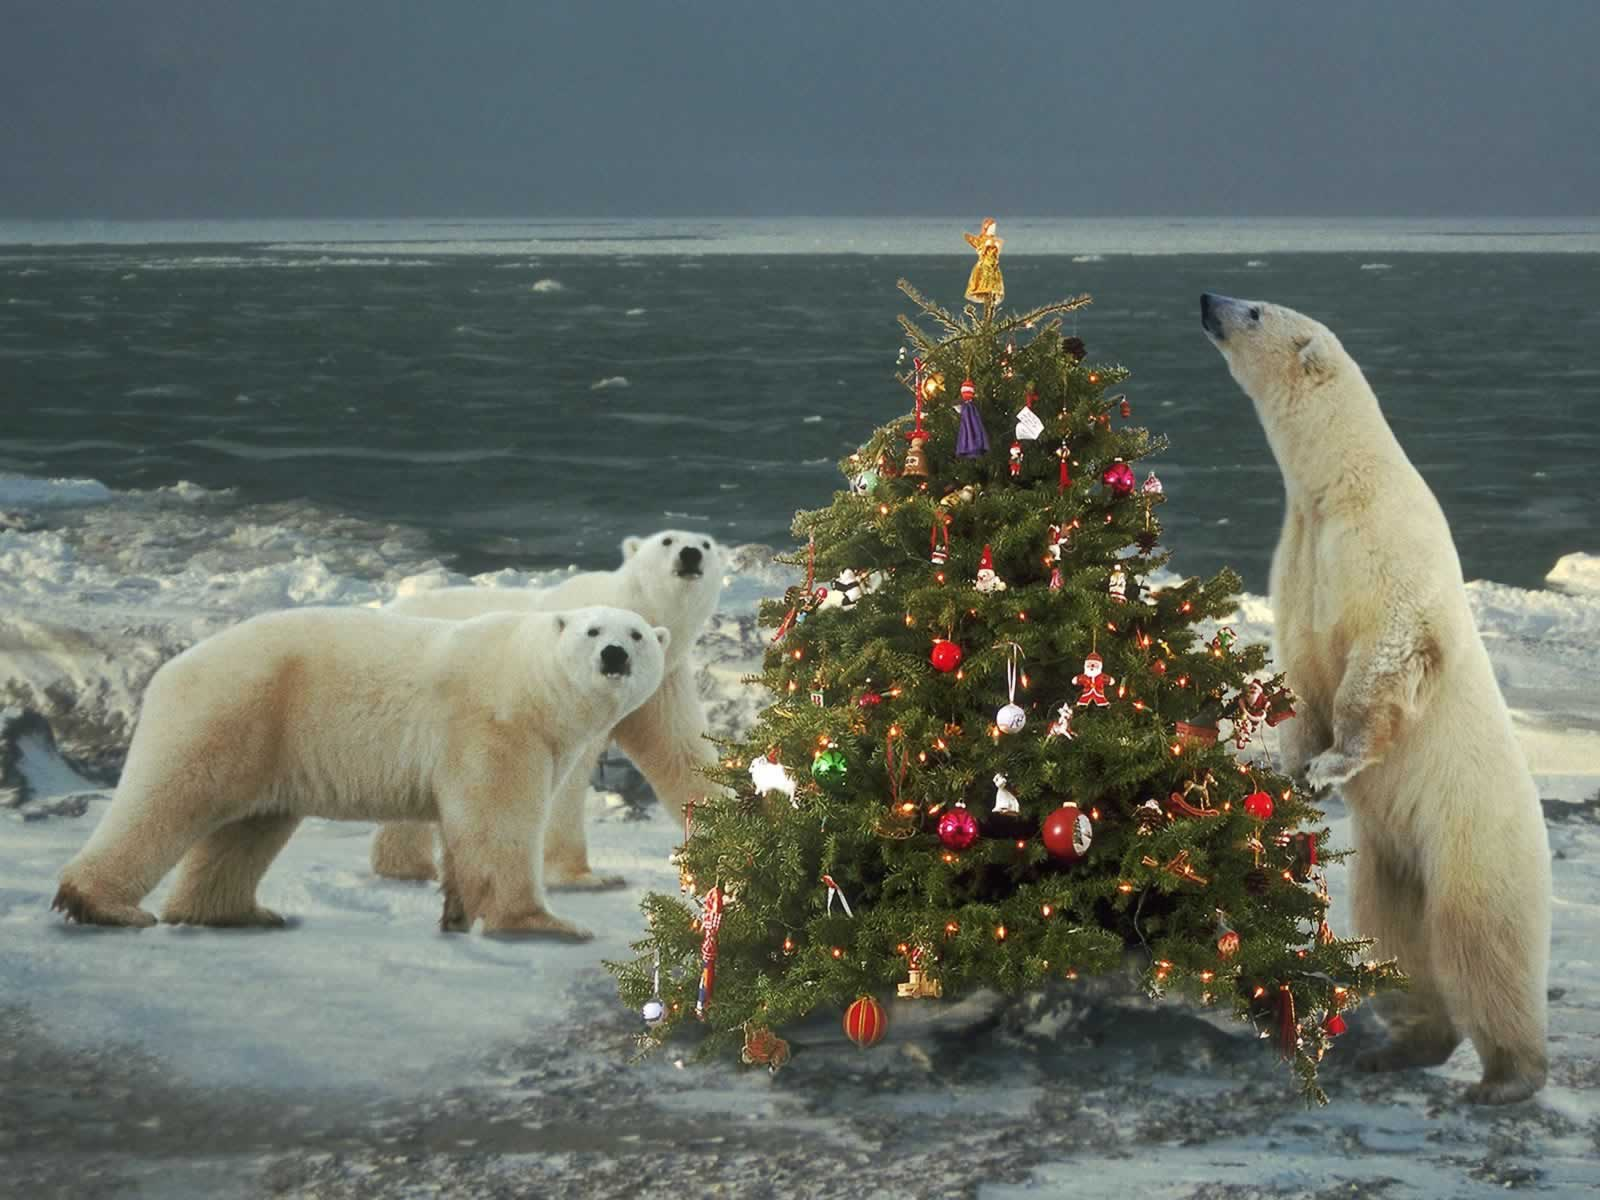 Polar Bears Wild About Christmas   Christmas Animals Wallpaper Image 1600x1200